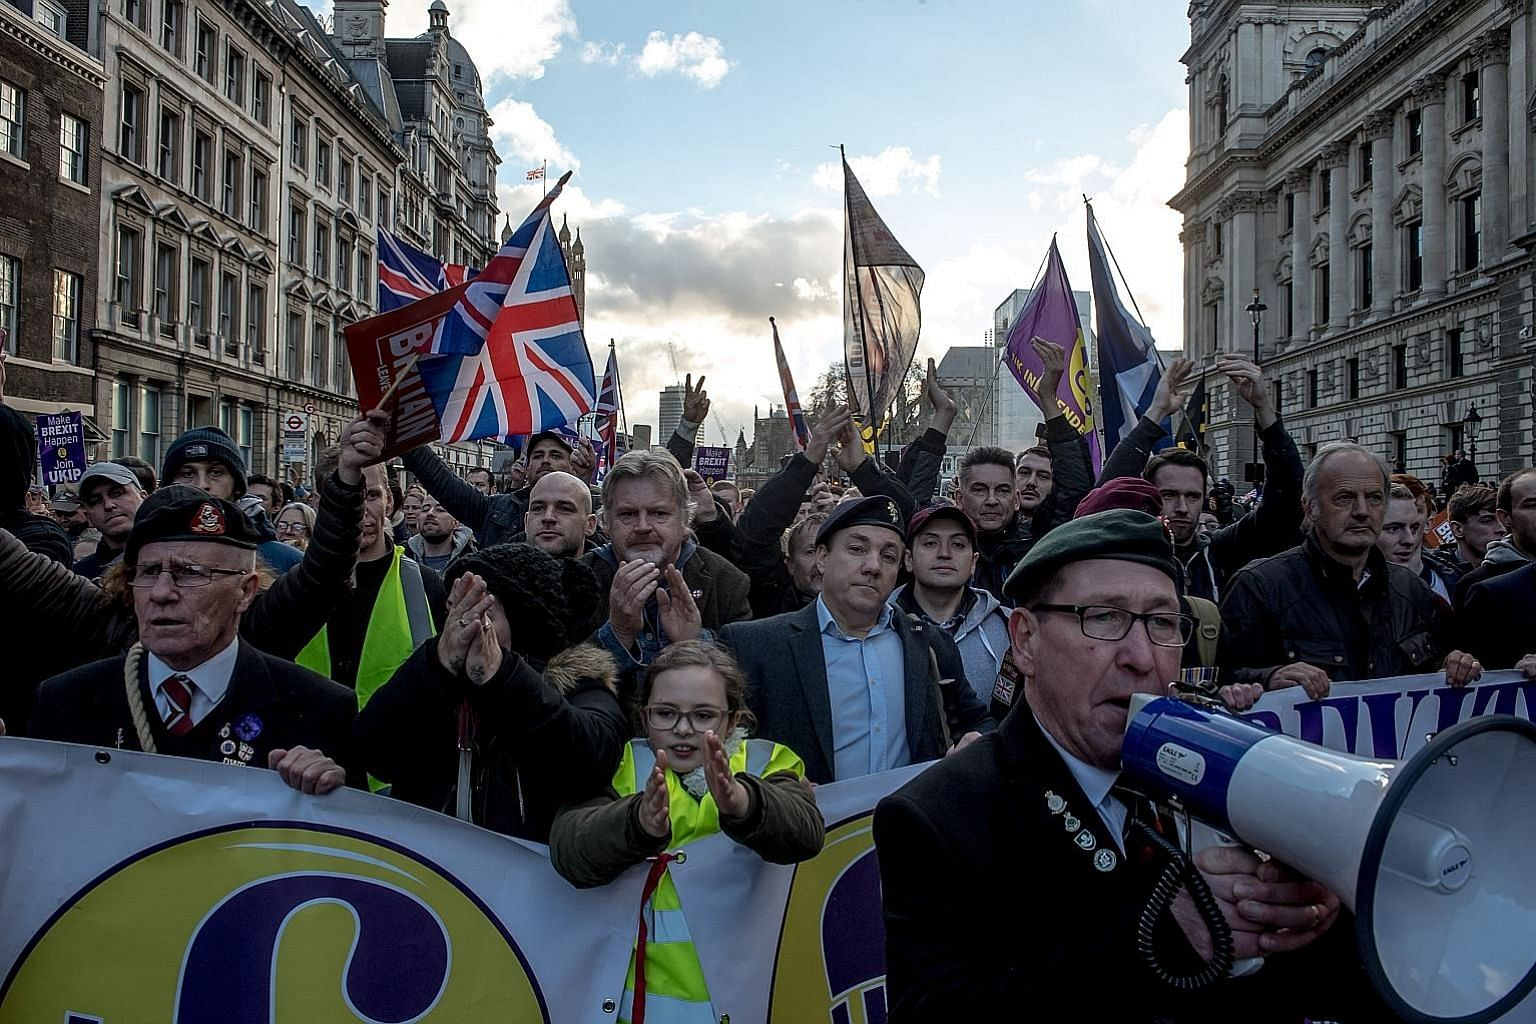 Demonstrators at a pro-Brexit rally in London last month. British Premier Theresa May is trying hard to make a chaotic no-deal Brexit seem as if it is an inescapable force of nature, says the writer. Yet it seems unlikely she would embrace the chaos